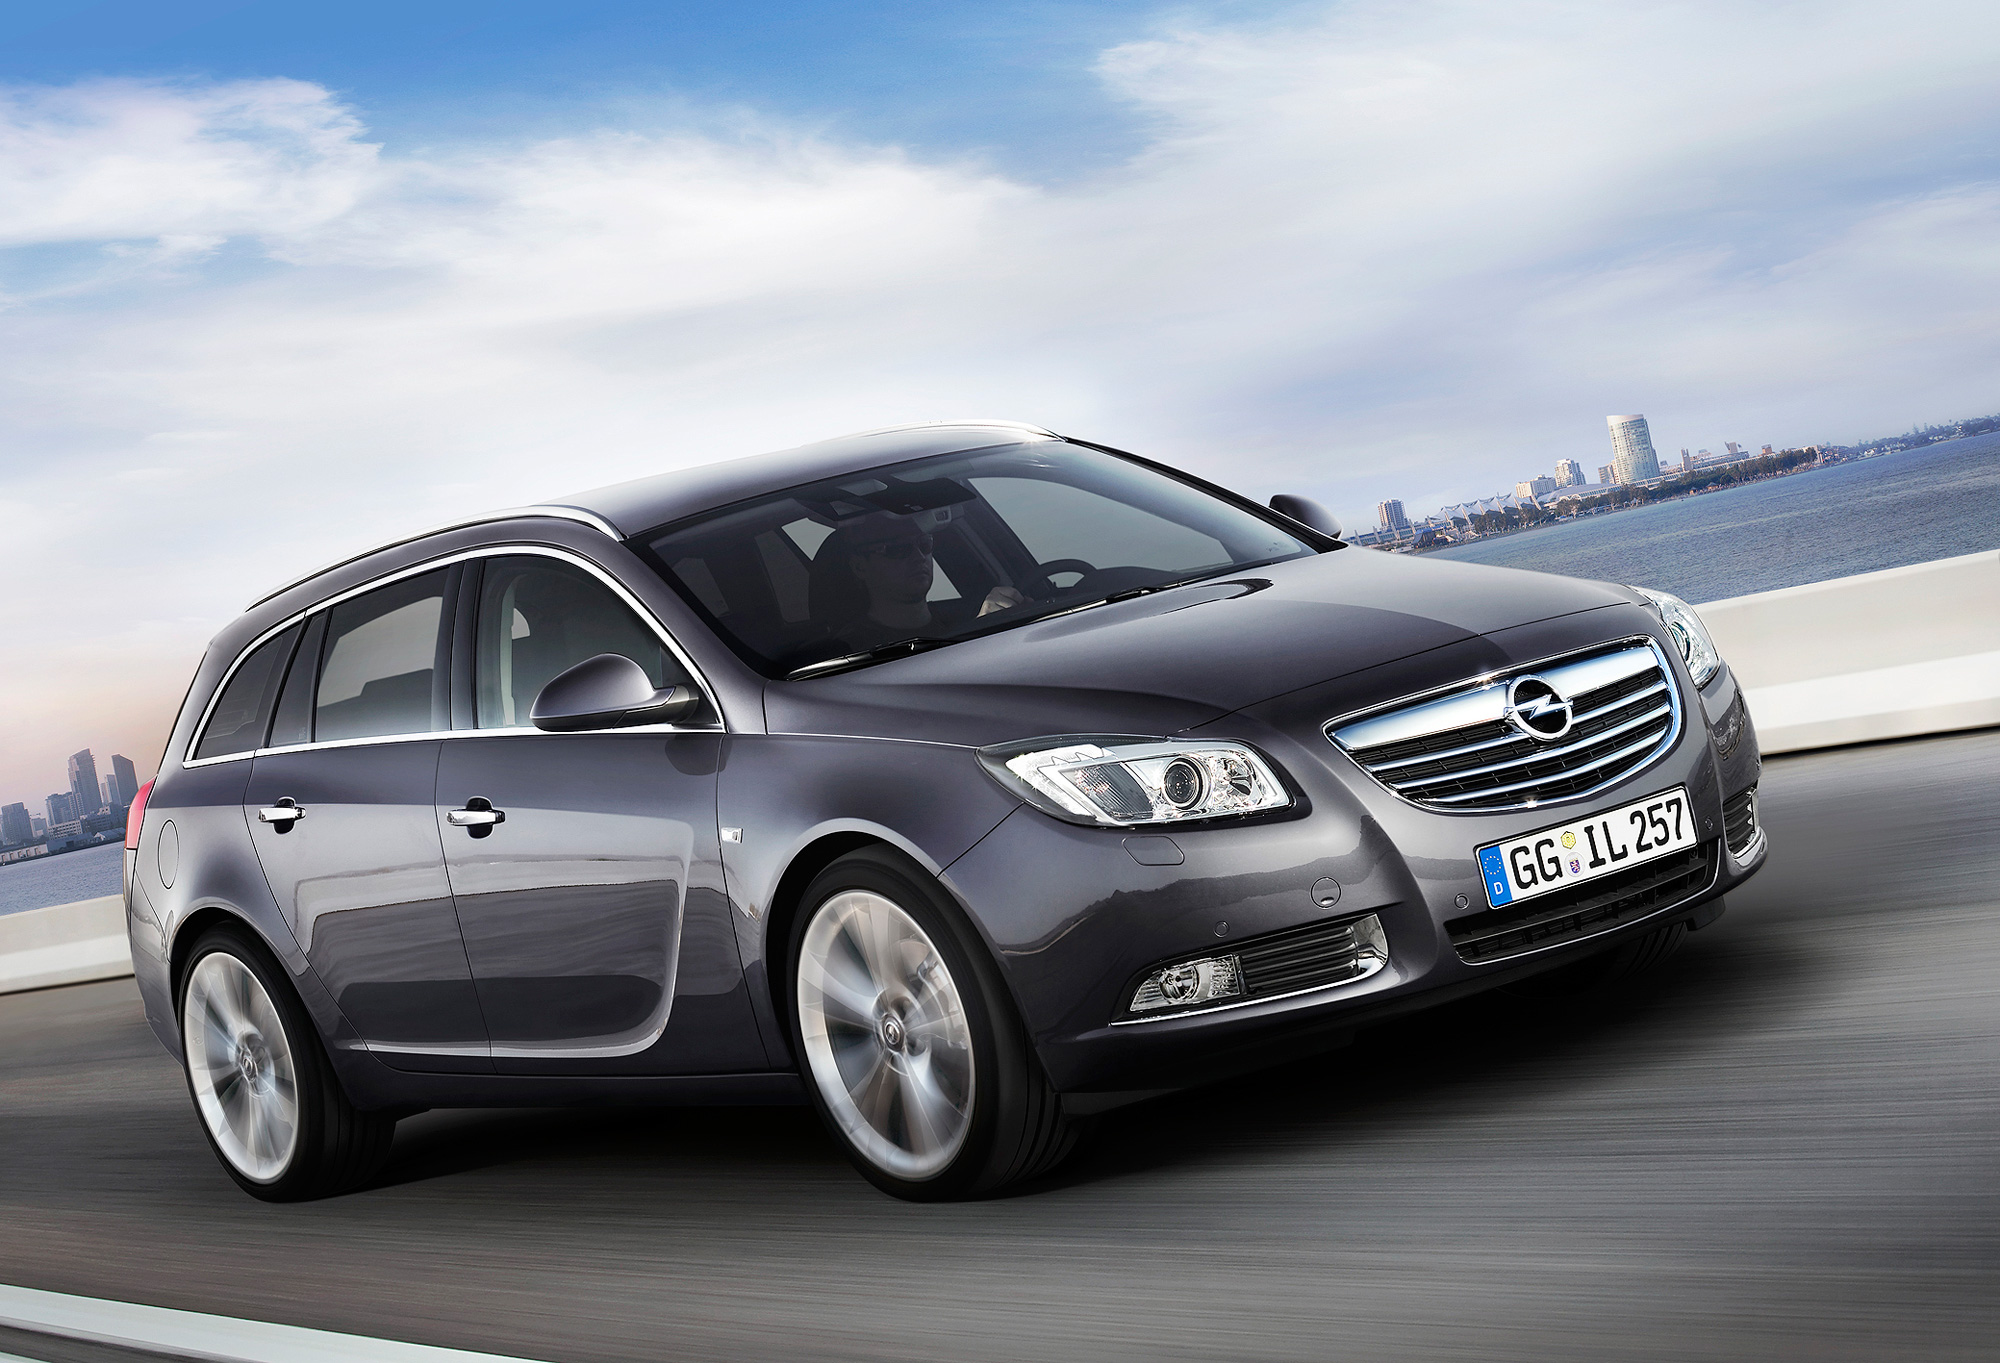 opel insignia wagon photos reviews news specs buy car. Black Bedroom Furniture Sets. Home Design Ideas